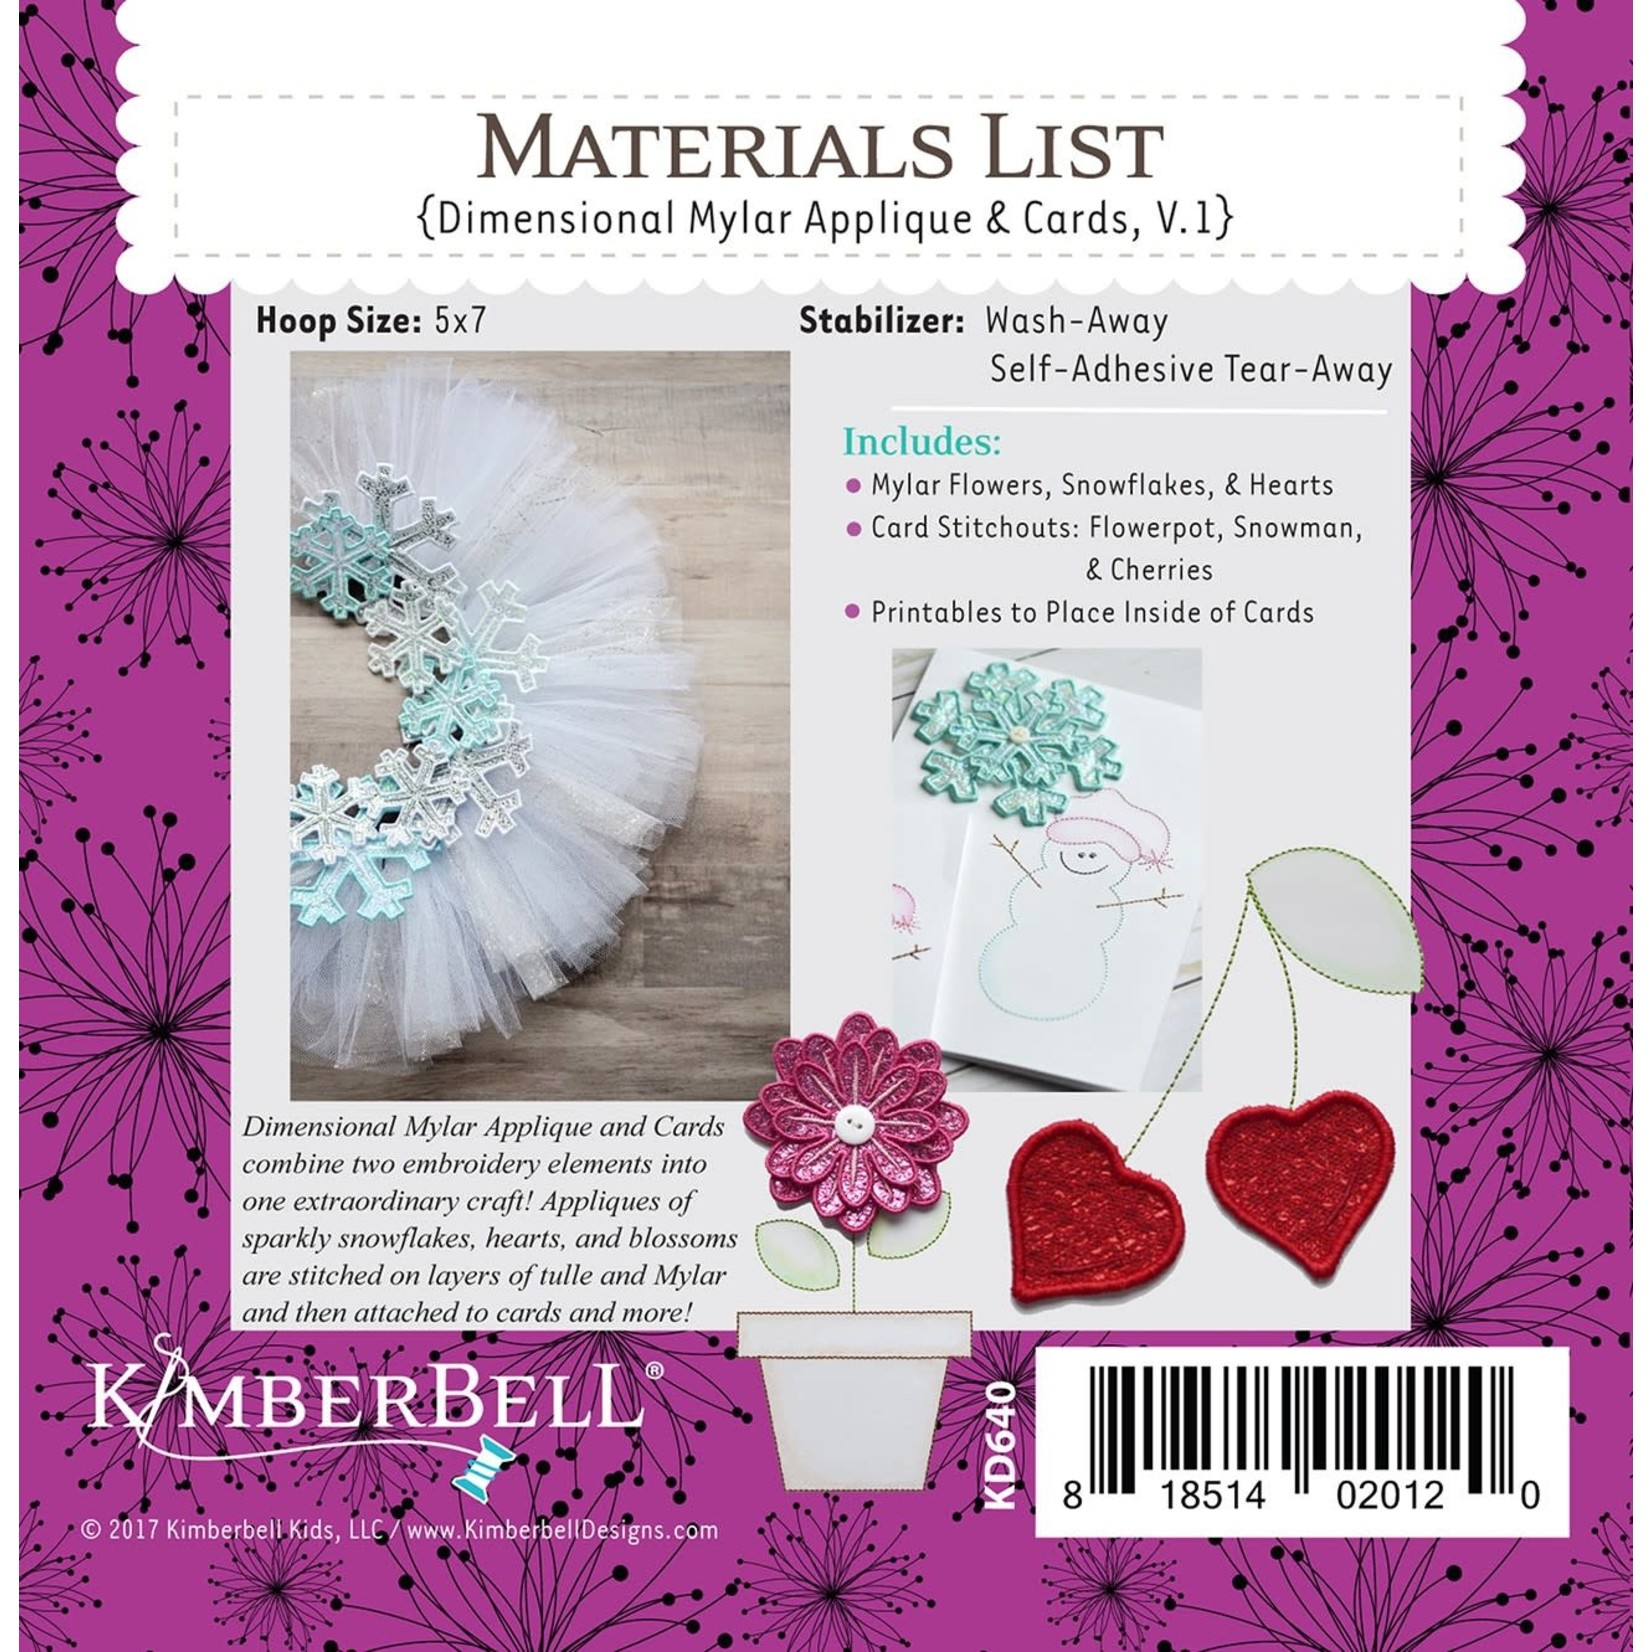 KIMBERBELL DESIGNS ME Time: Dimensional Mylar Applique & Cards, Volume 1 Embroidery CD